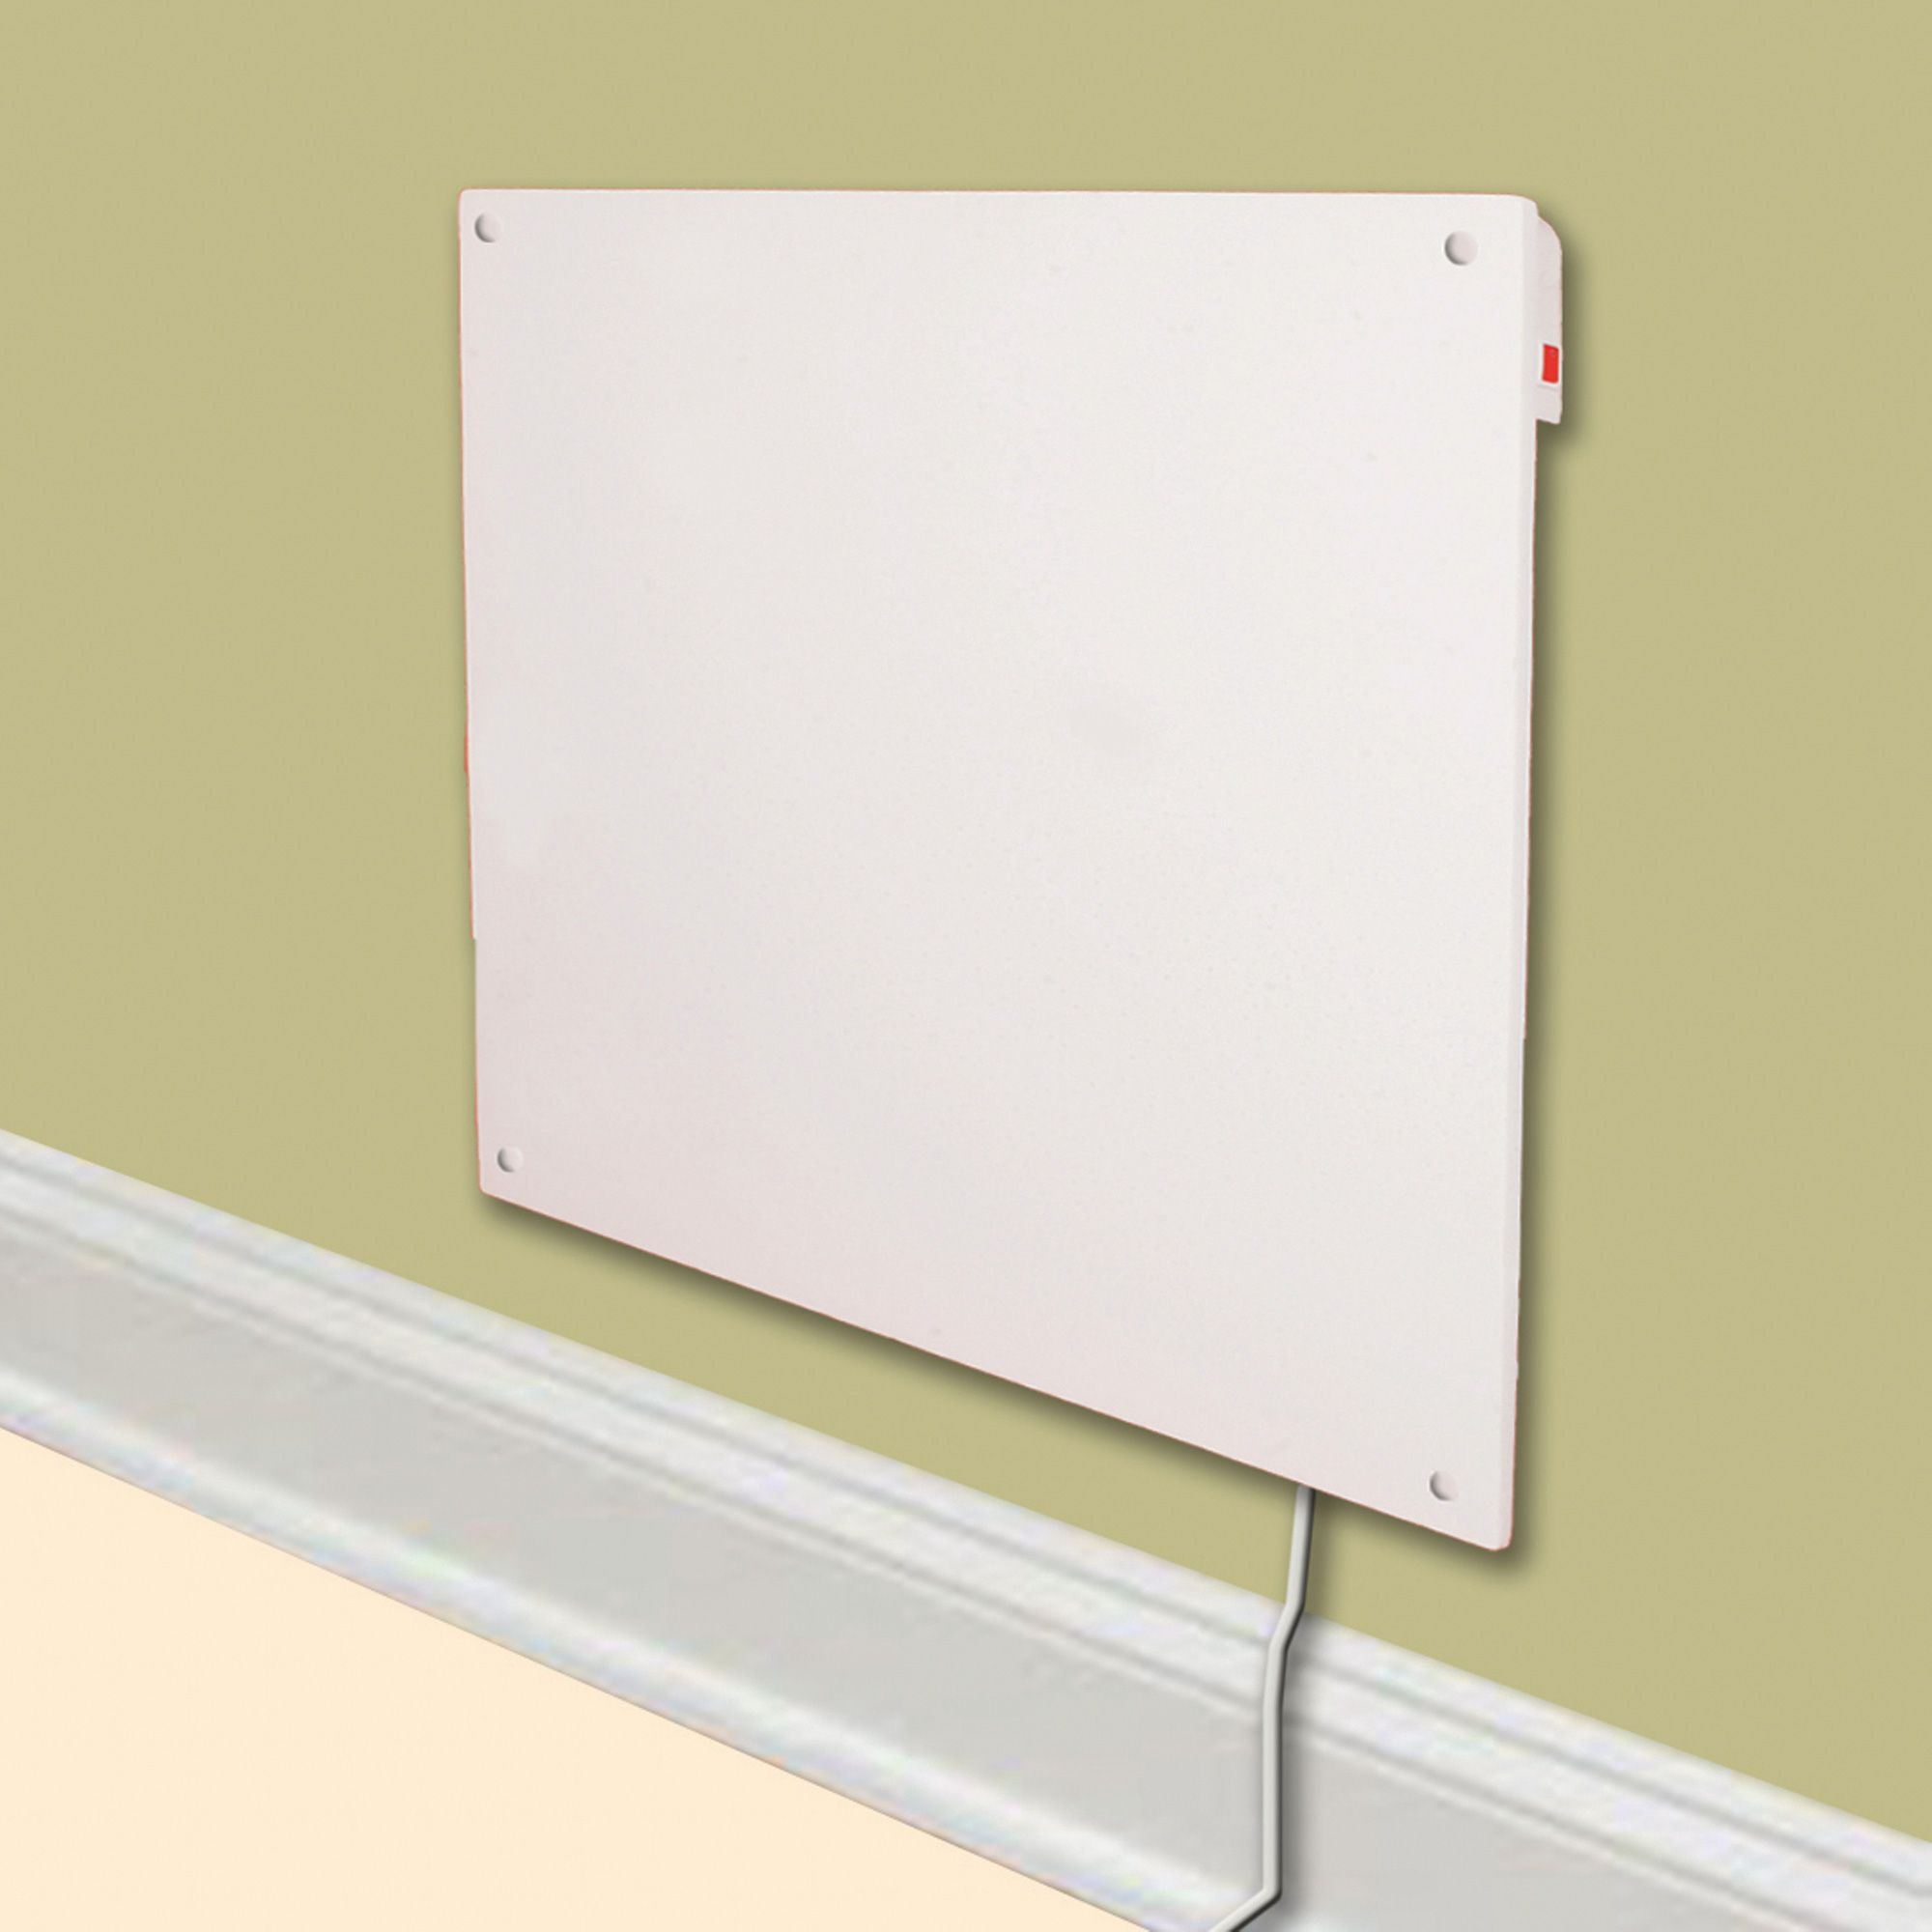 Electric Wall Heaters For Homes Cozy Heater Electric Wall